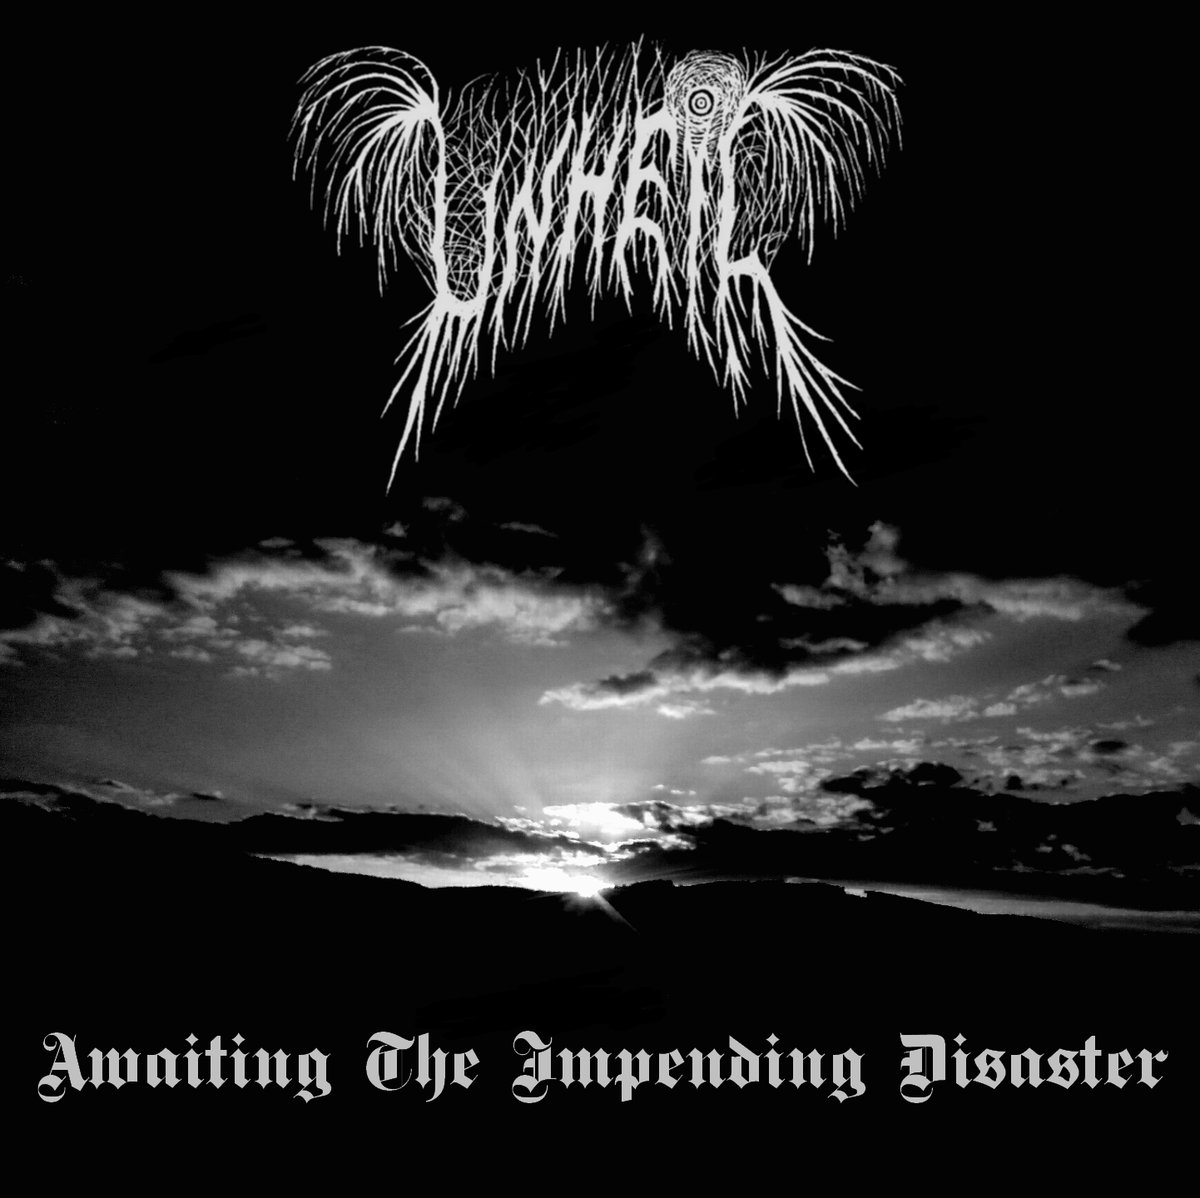 unheil-awaiting-the-impending-disaster-ep-review